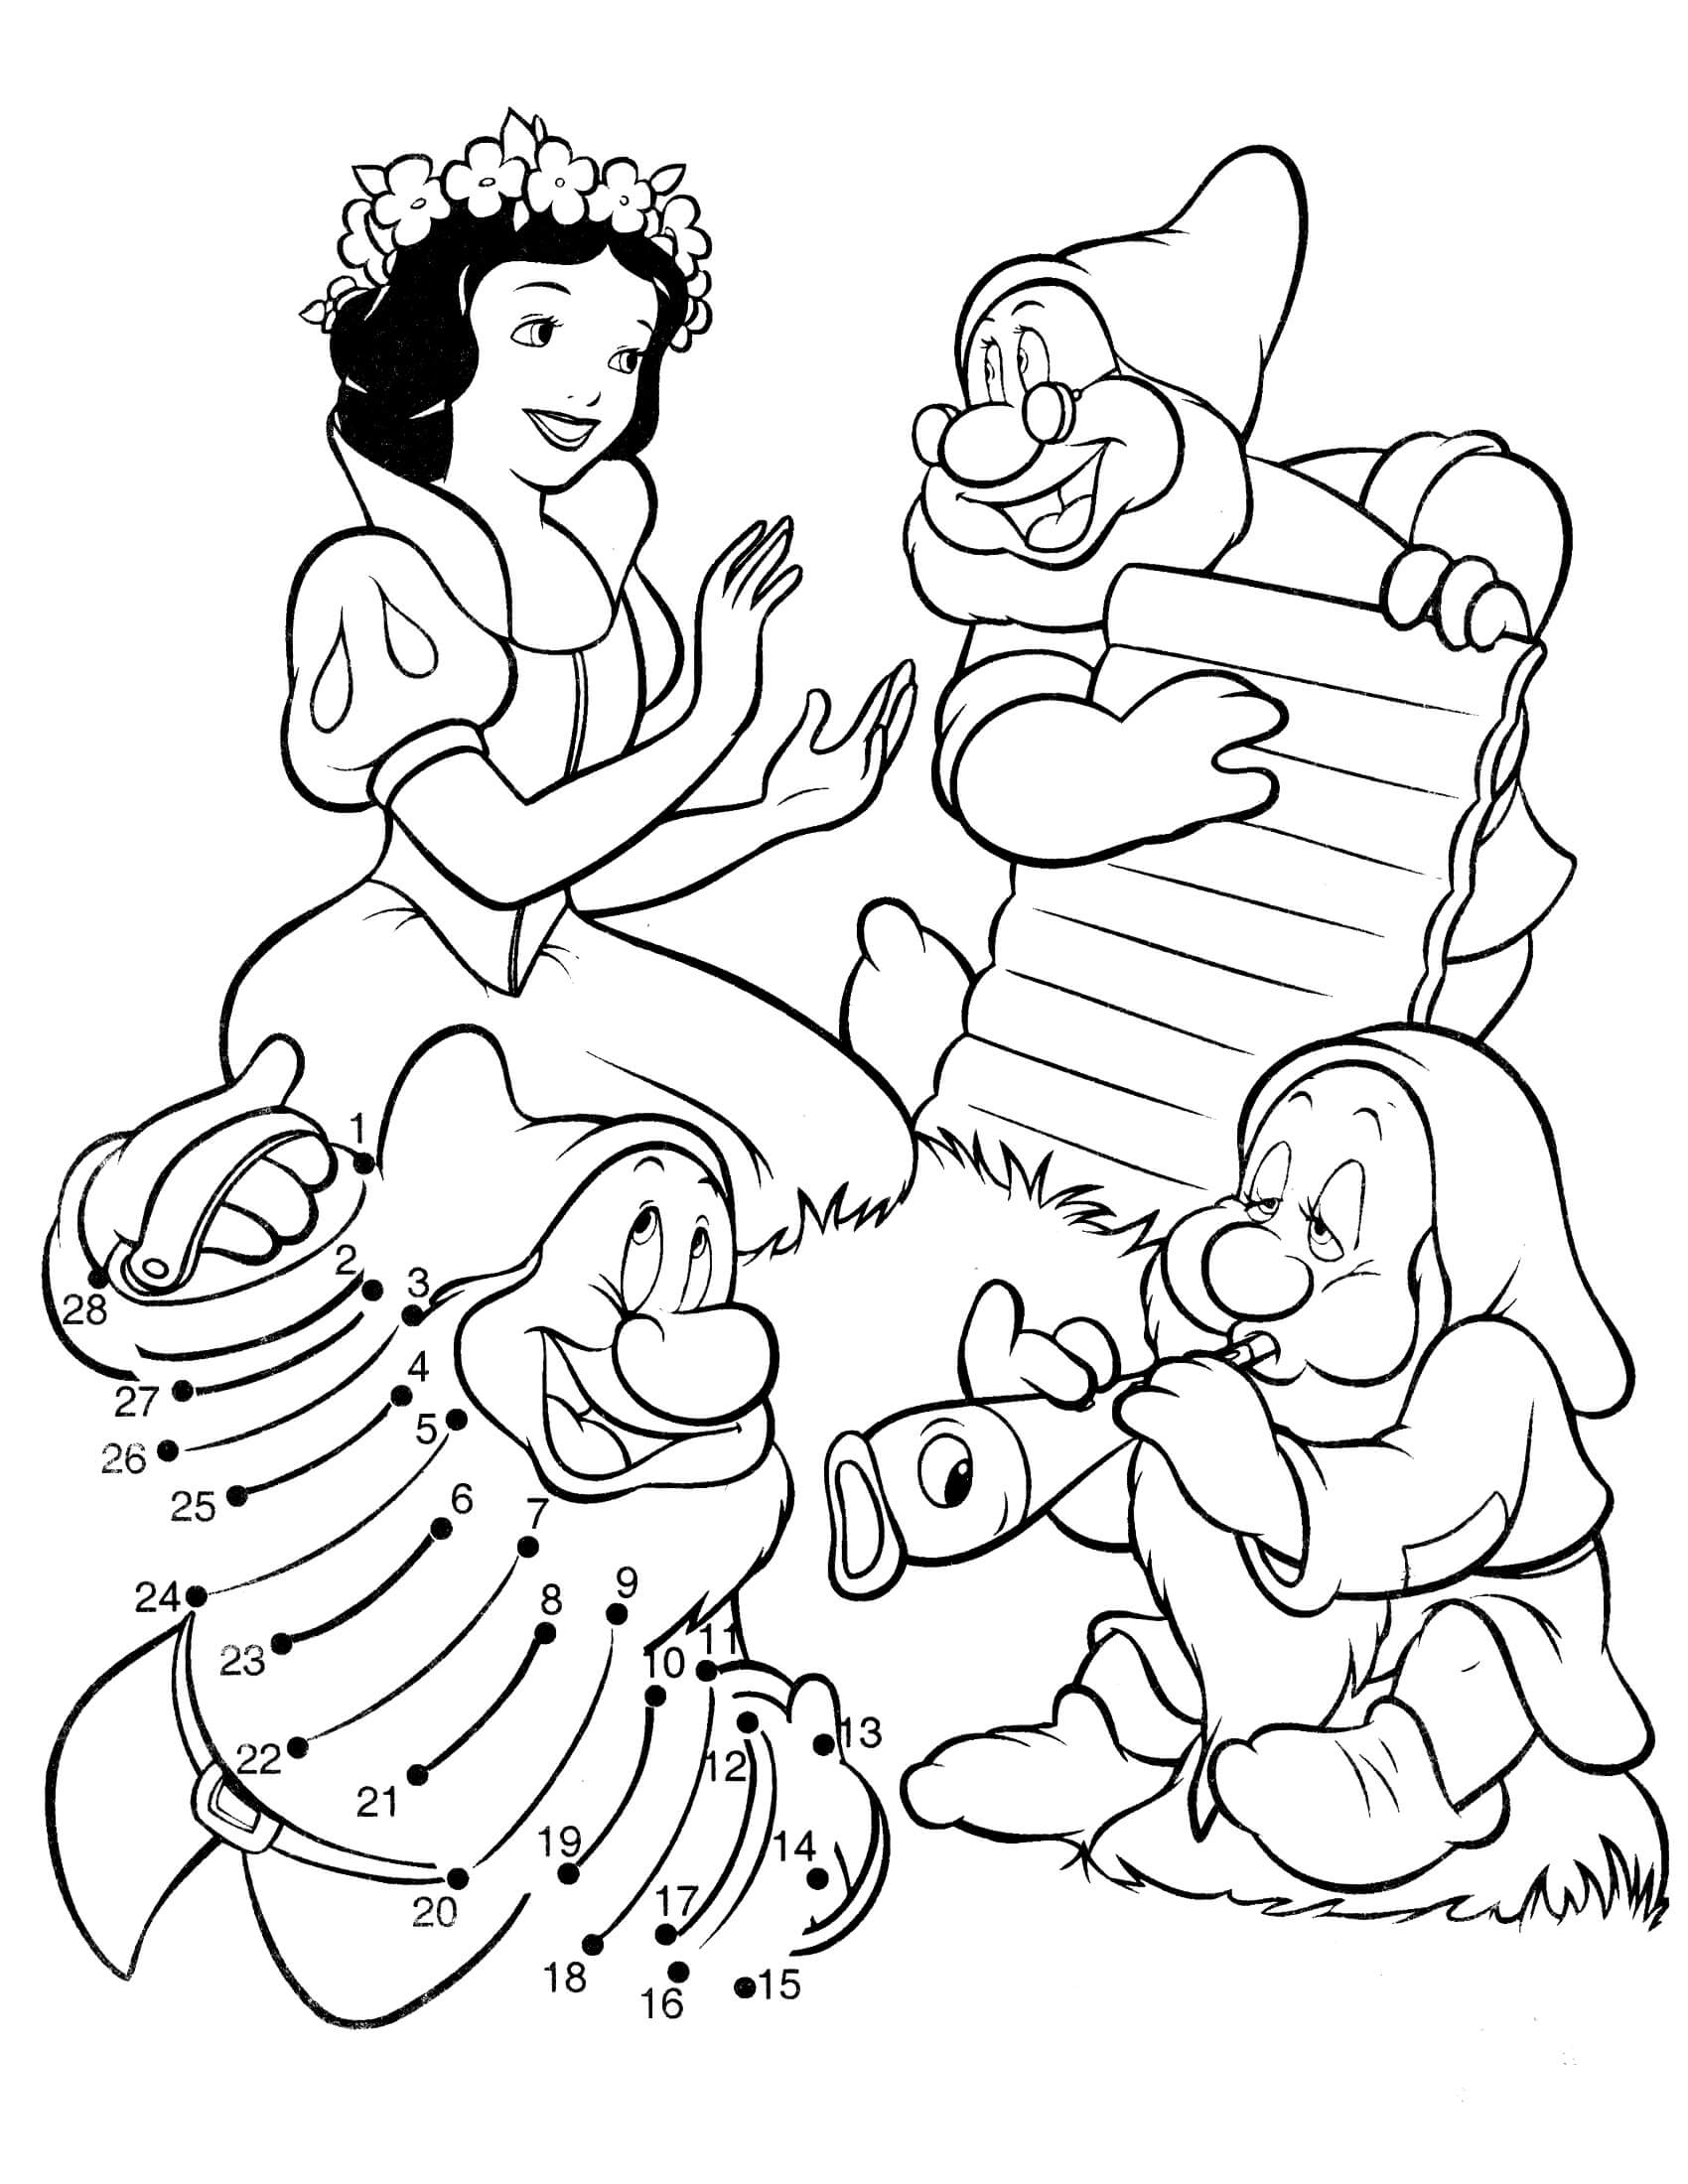 snow white color snow white coloring pages to download and print for free snow white color